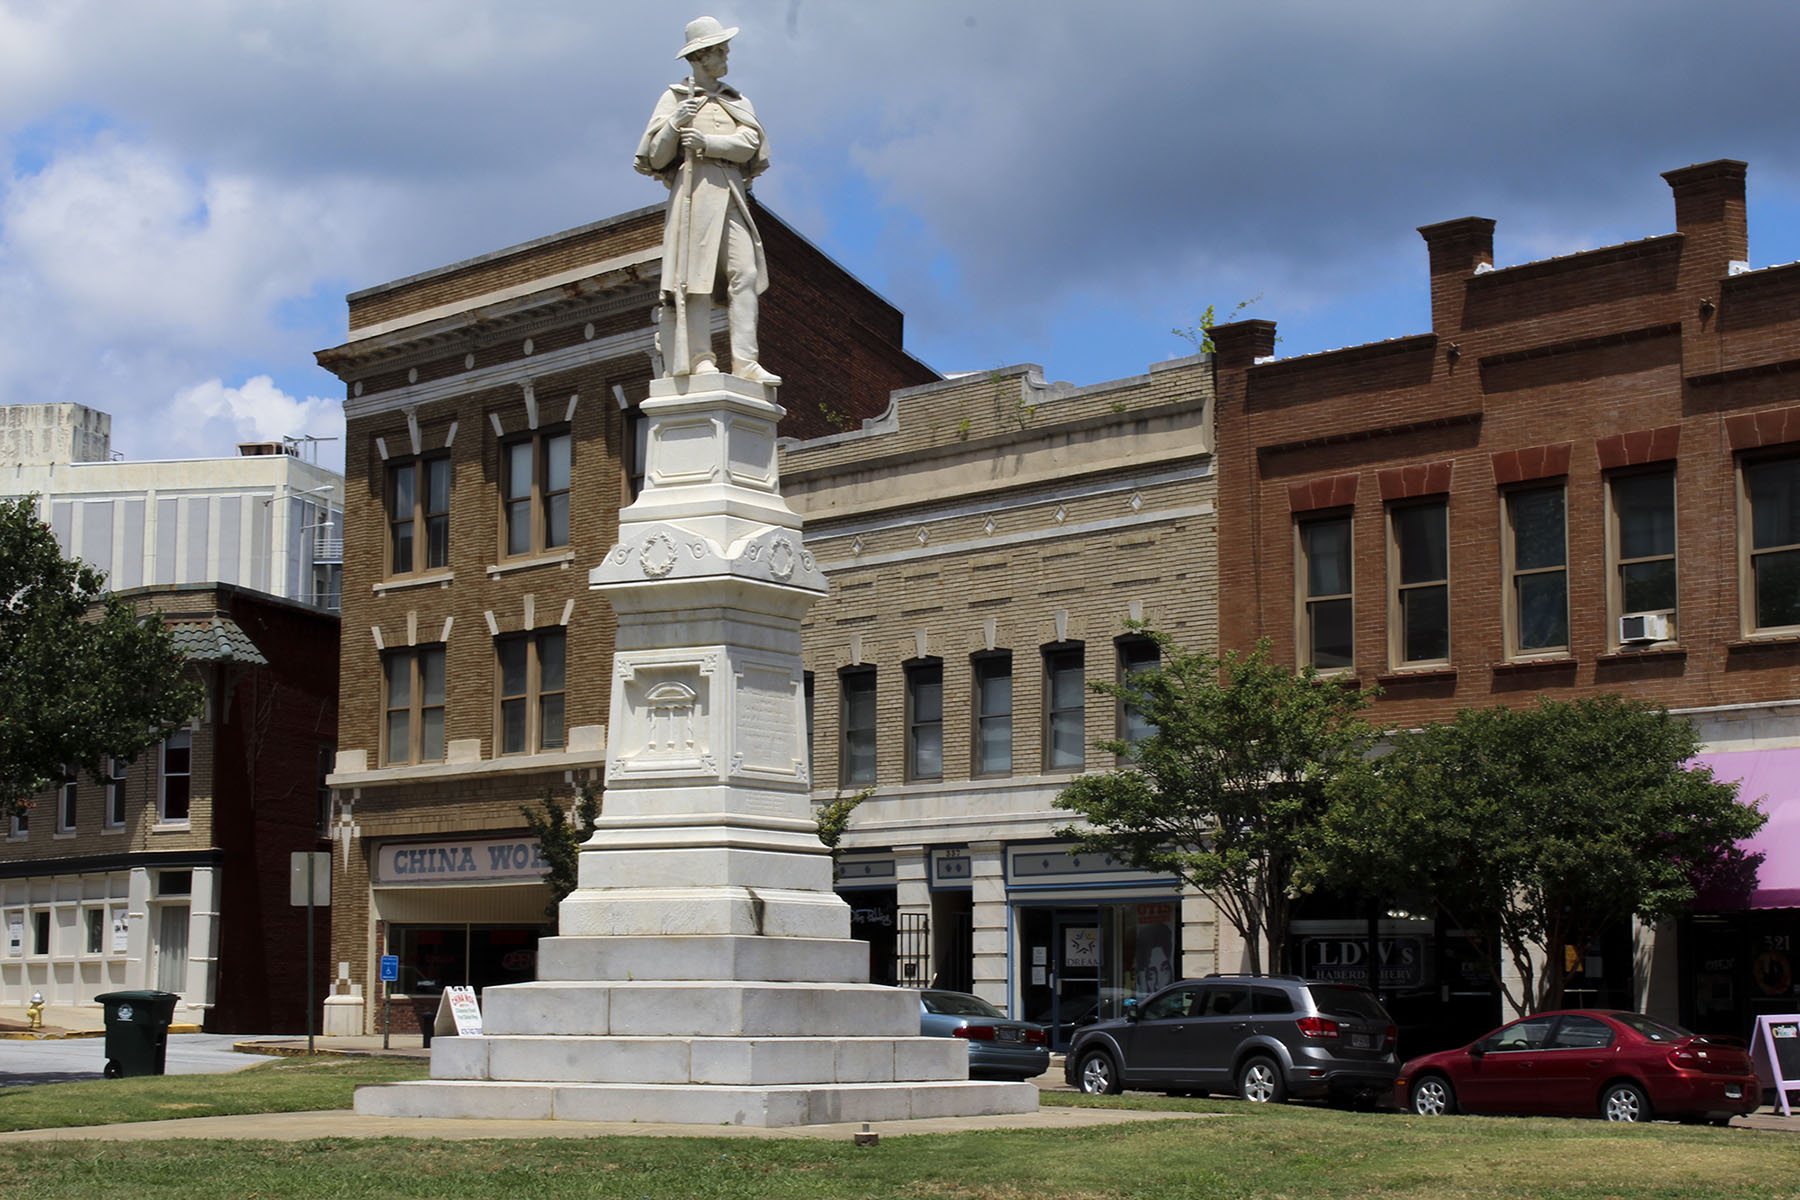 A statue honoring Confederate soldiers has stood at the intersection of Cotton Avenue and Second Street for more than 50 years. Opinions are split regarding whether monuments in the state should be removed - former Macon Mayor C. Jack Ellis wants all public Confederate statues removed, while state Rep. Tommie Benton wants the monuments preserved. (Phillip Jackson/News21)